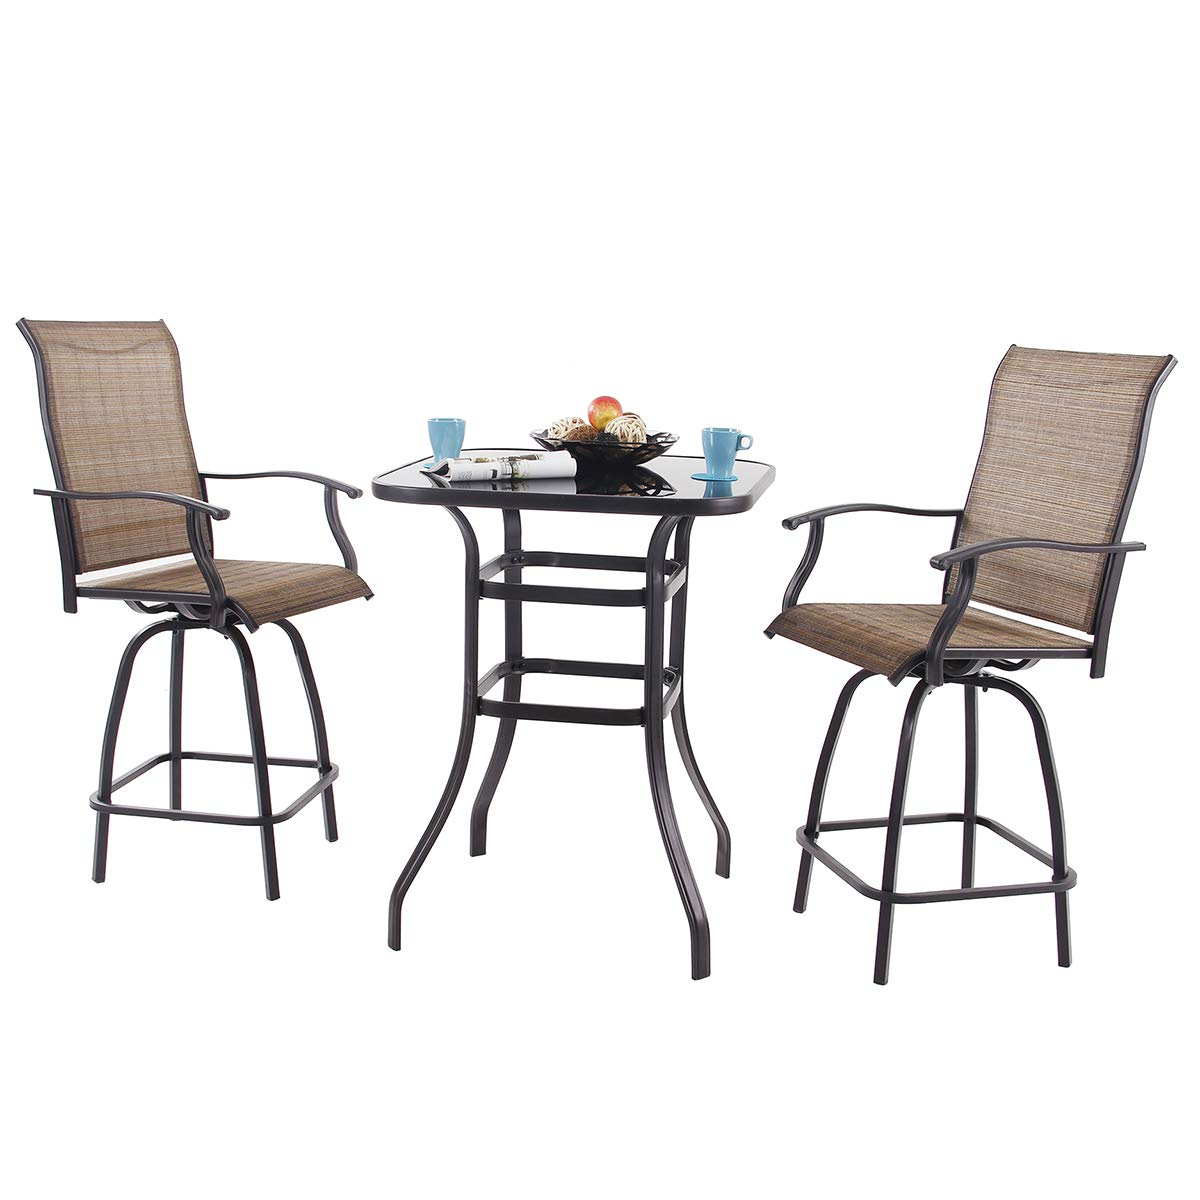 PHI VILLA Swivel Bar Stools All-Weather Patio Furniture, Set of 2